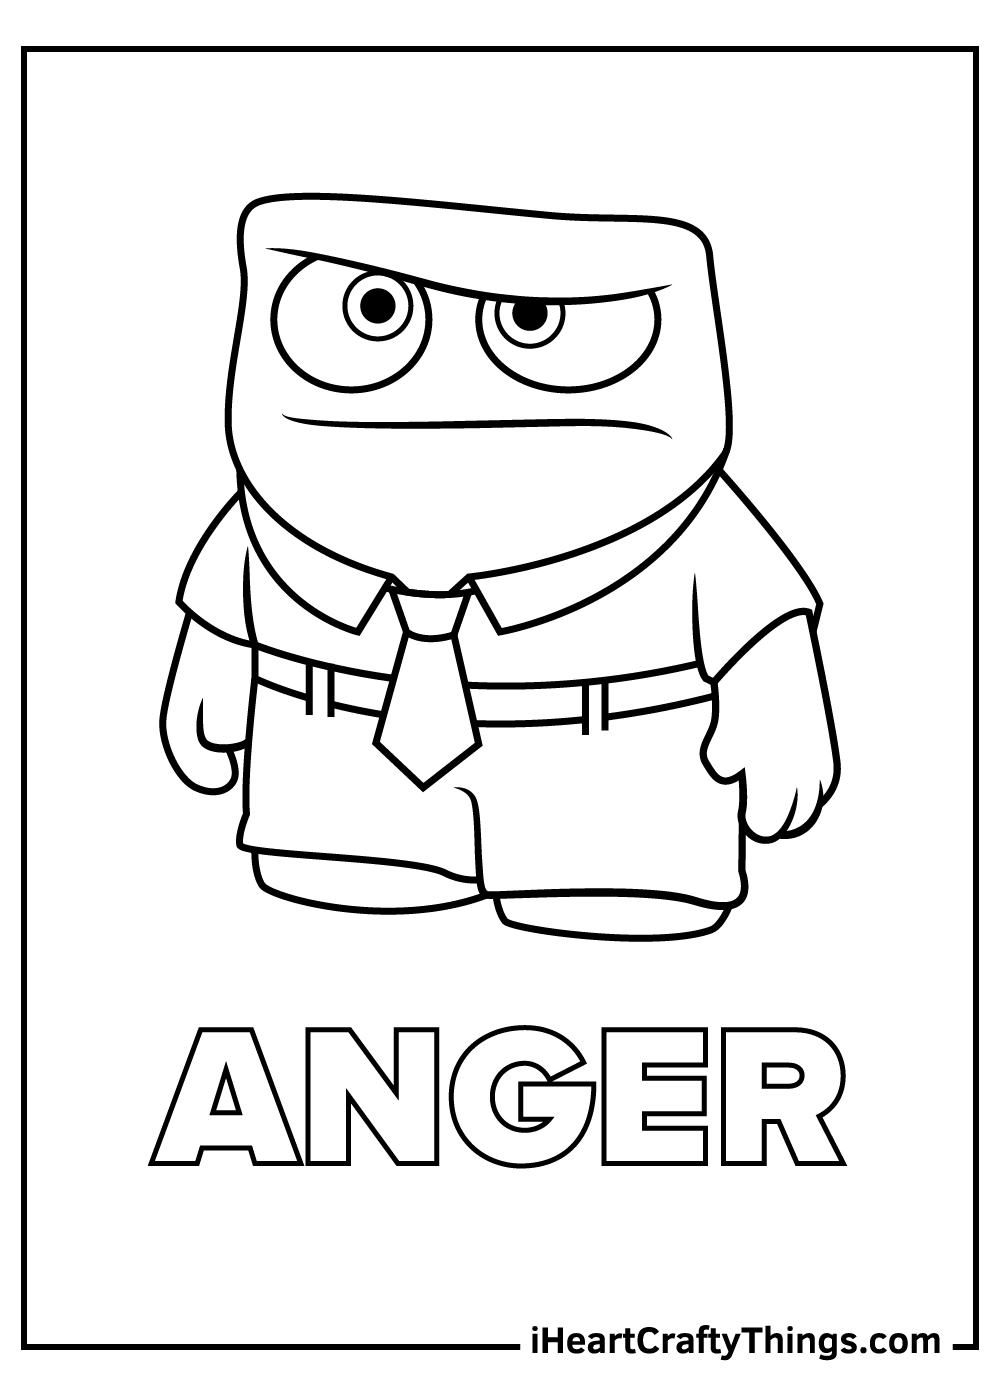 inside out coloring updated animals paint party favors christmascoloring sheet sheets coloring pages Inside Out Coloring Page